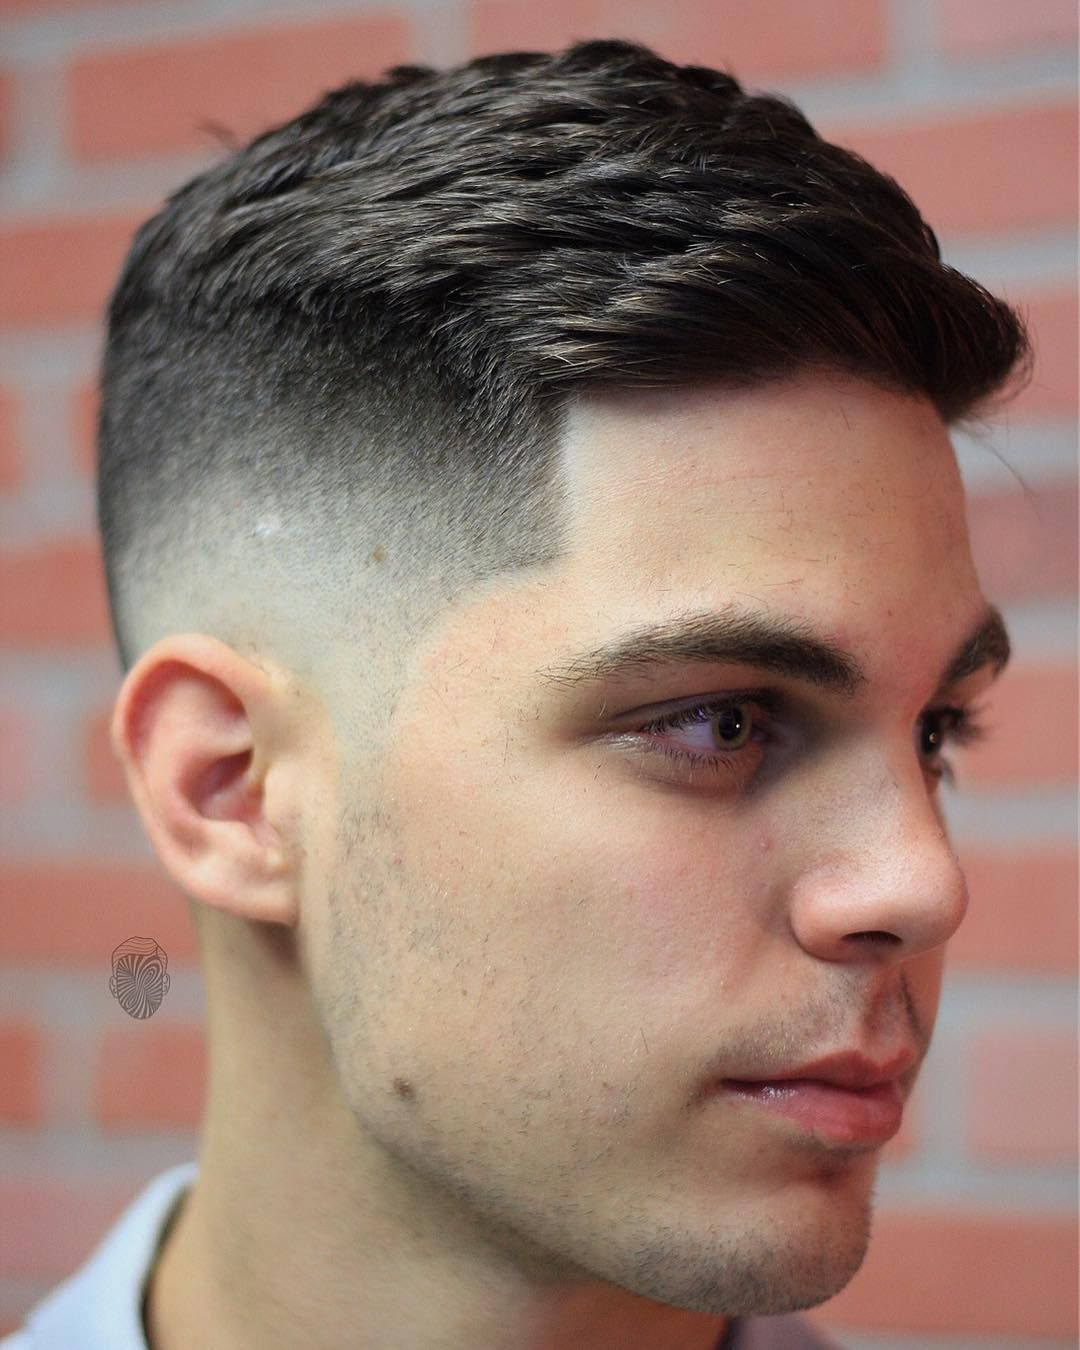 50 Most Popular Men's Haircuts (2021 Cuts & Styles)